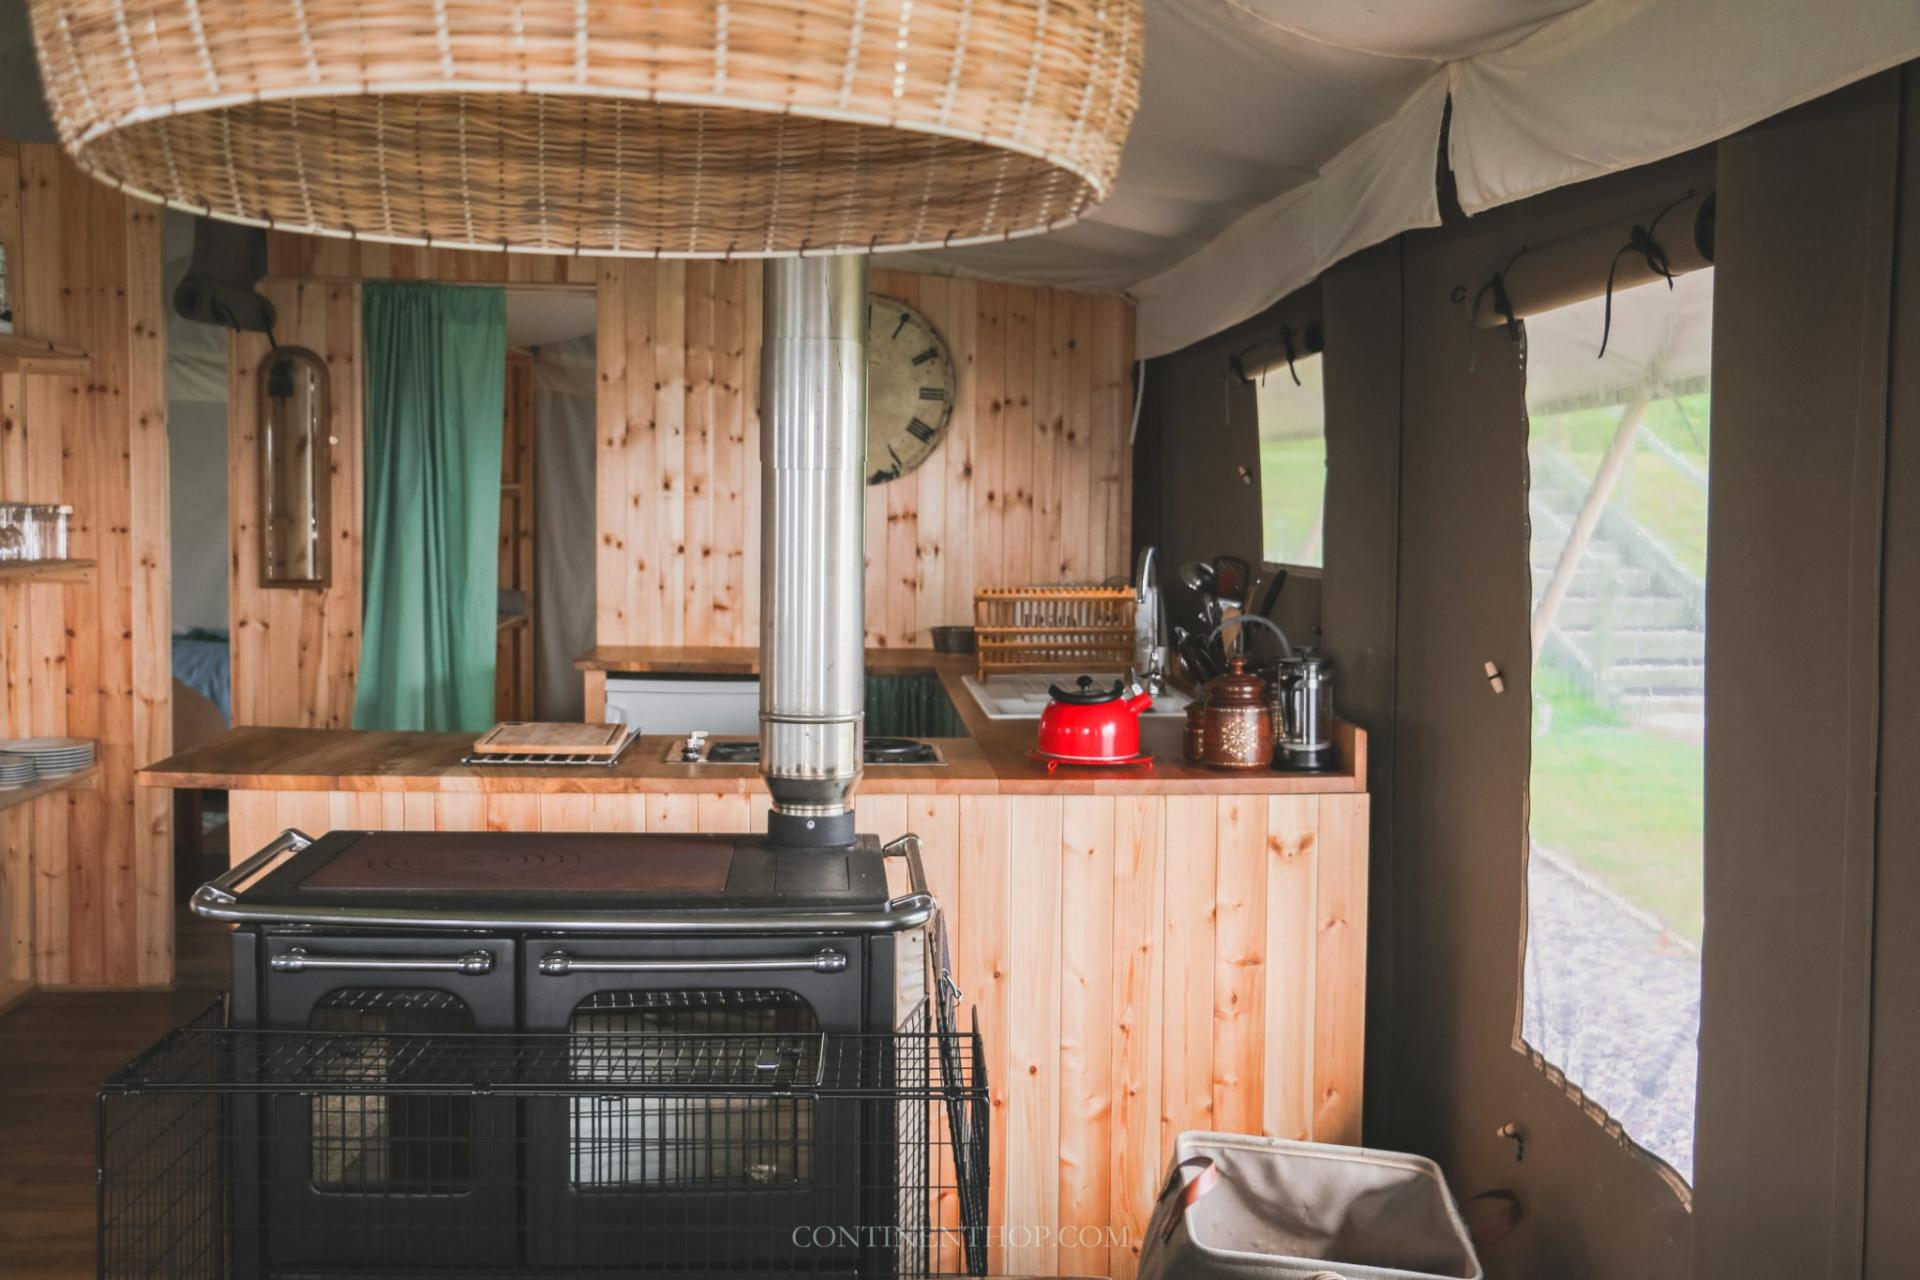 kitchen with wood stove inside glamping tent in fife scotland